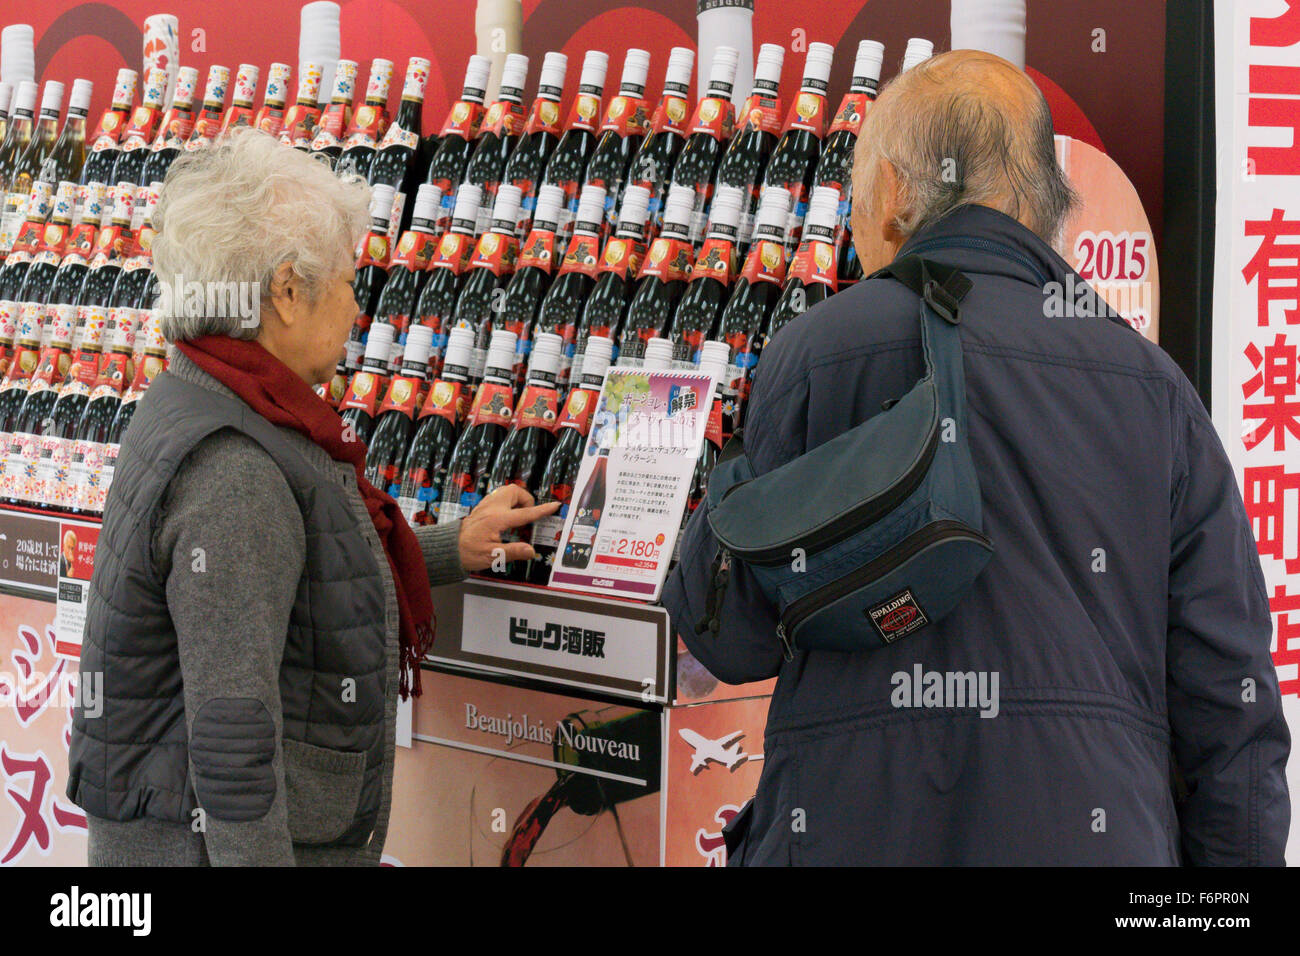 People look at the Beaujolais Nouveau red wine bottles on sale outside the Bic Camera electronics store in Ginza - Stock Image